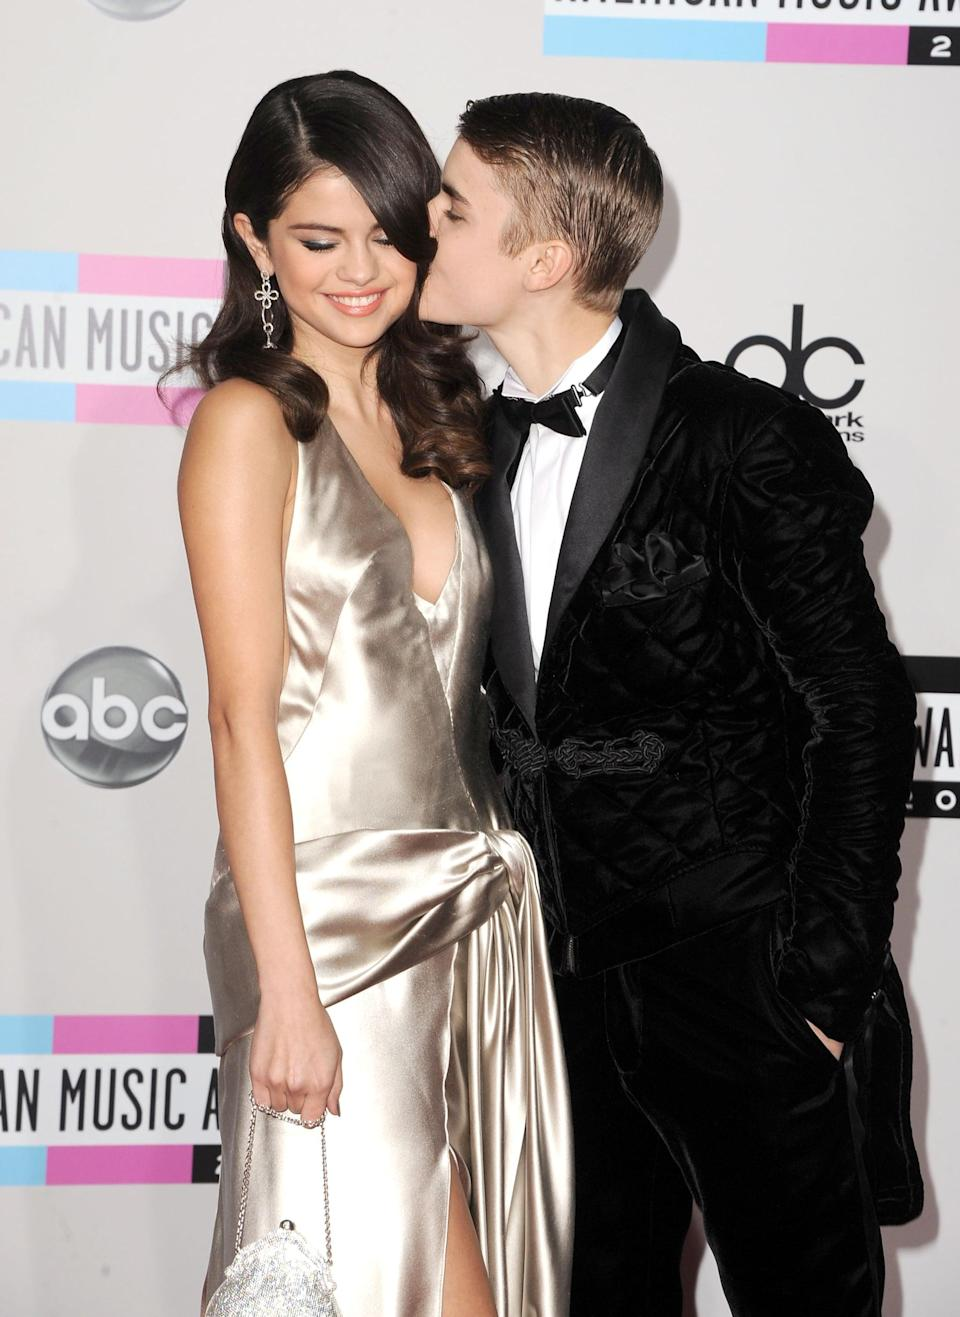 <p>She kept the glamour going at the American Music Awards, where she and boyfriend Justin Bieber showed PDA on the red carpet.</p>